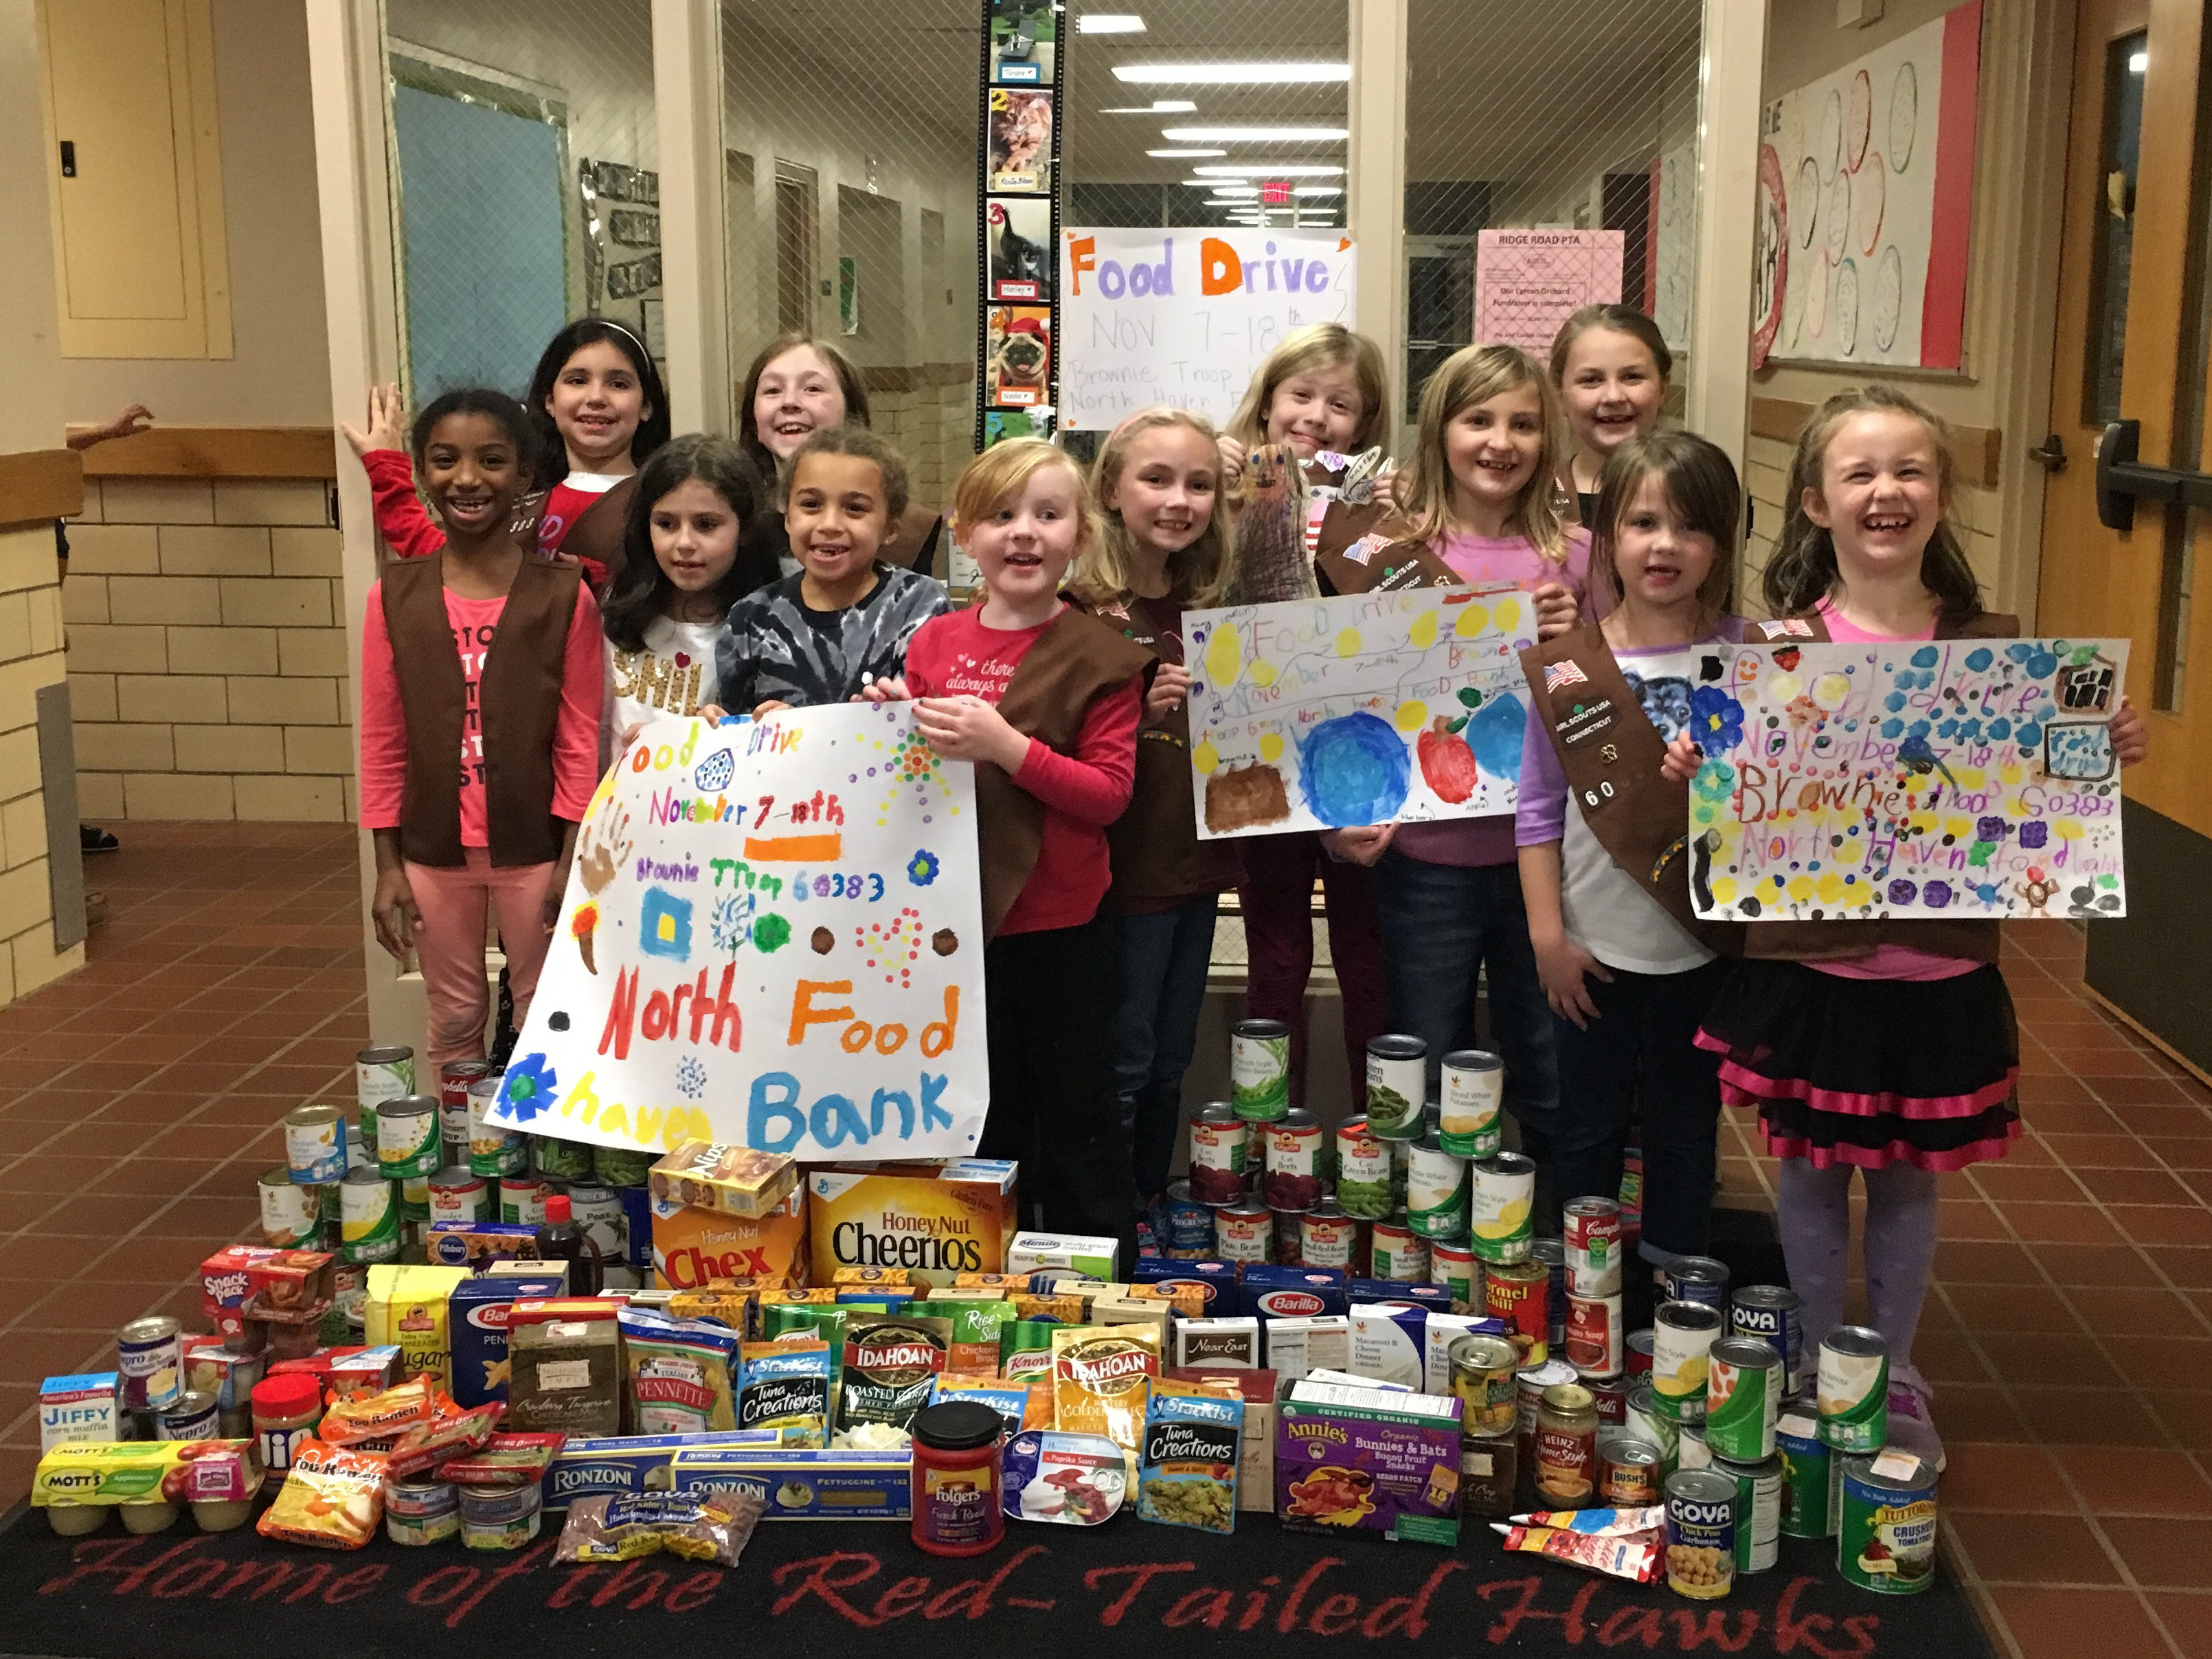 Brownie Troop 60383 of Ridge Road Elementary School in North Haven held its second annual Thanksgiving food drive as part of the troop's community service work. The troop organized, collected and donated more than 165 pounds of food to the North Haven Food Bank.